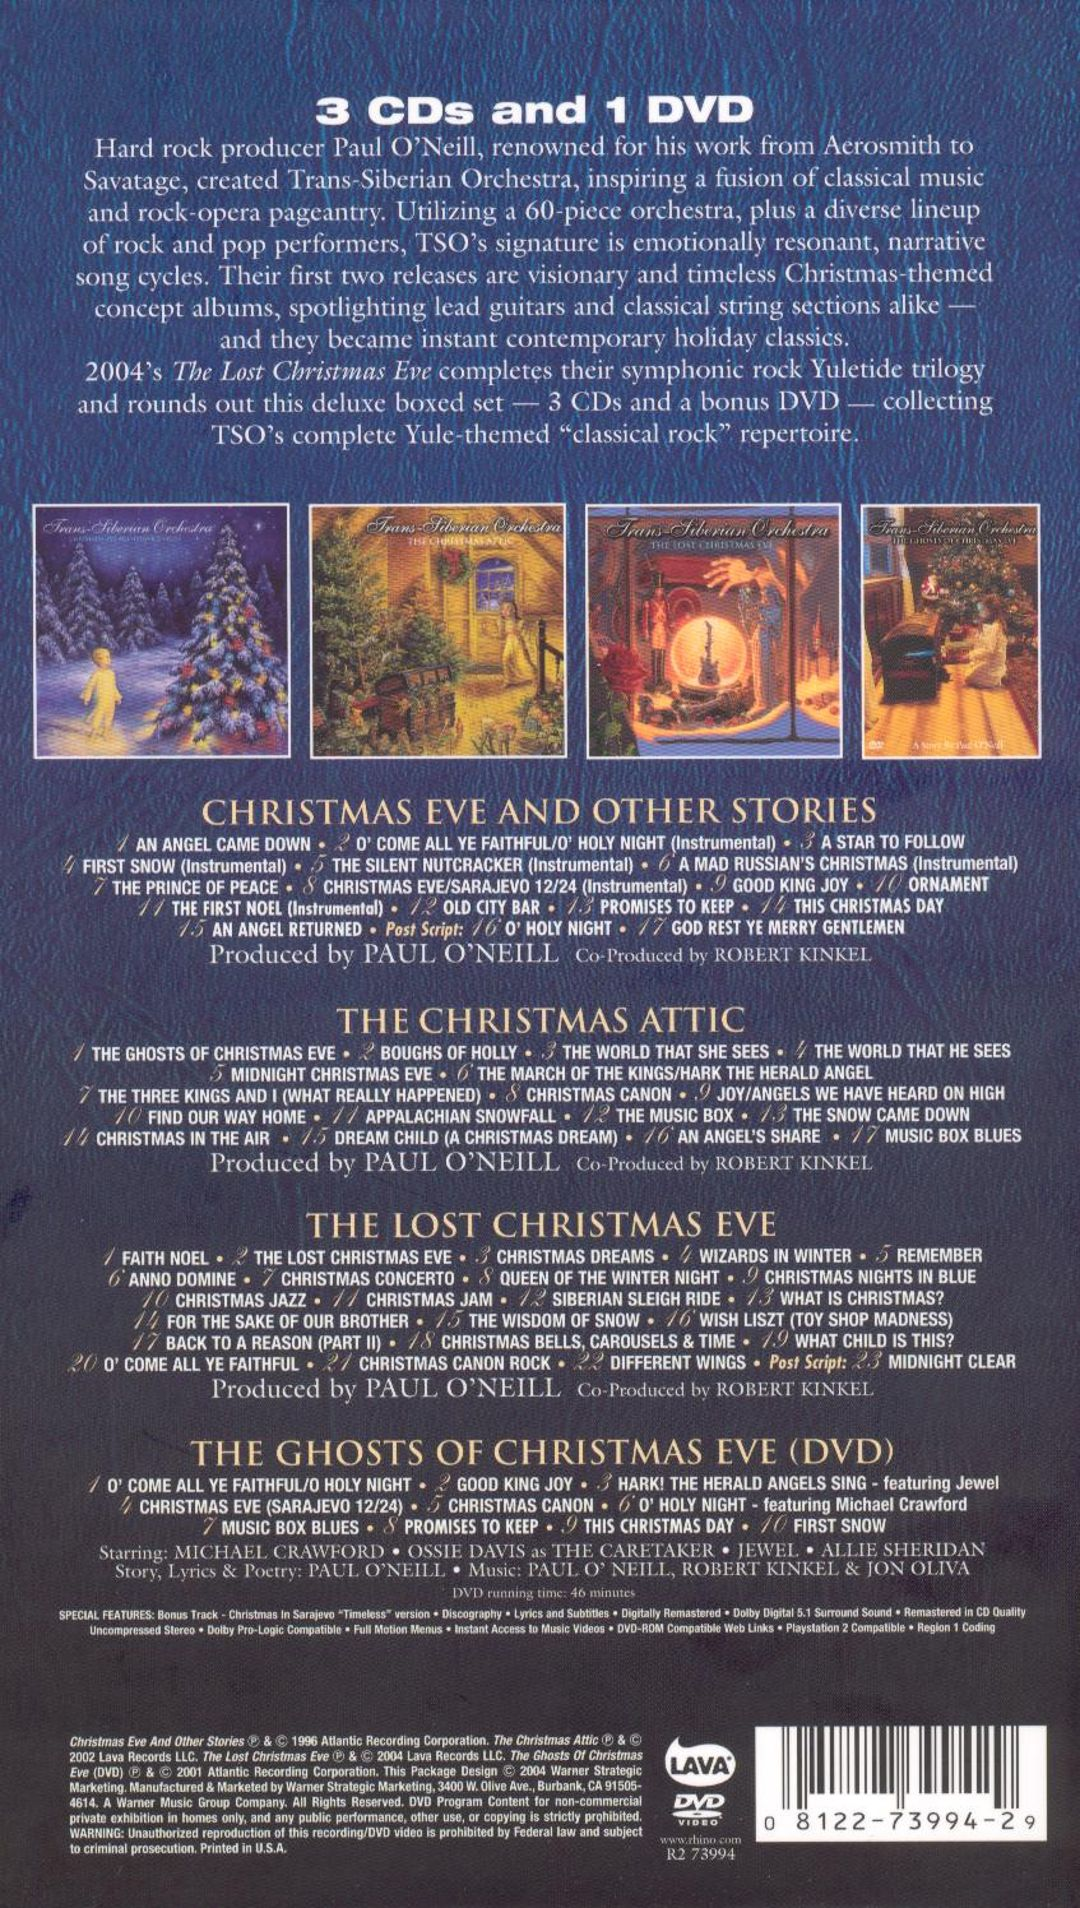 The Christmas Trilogy - Trans-Siberian Orchestra | Songs, Reviews ...